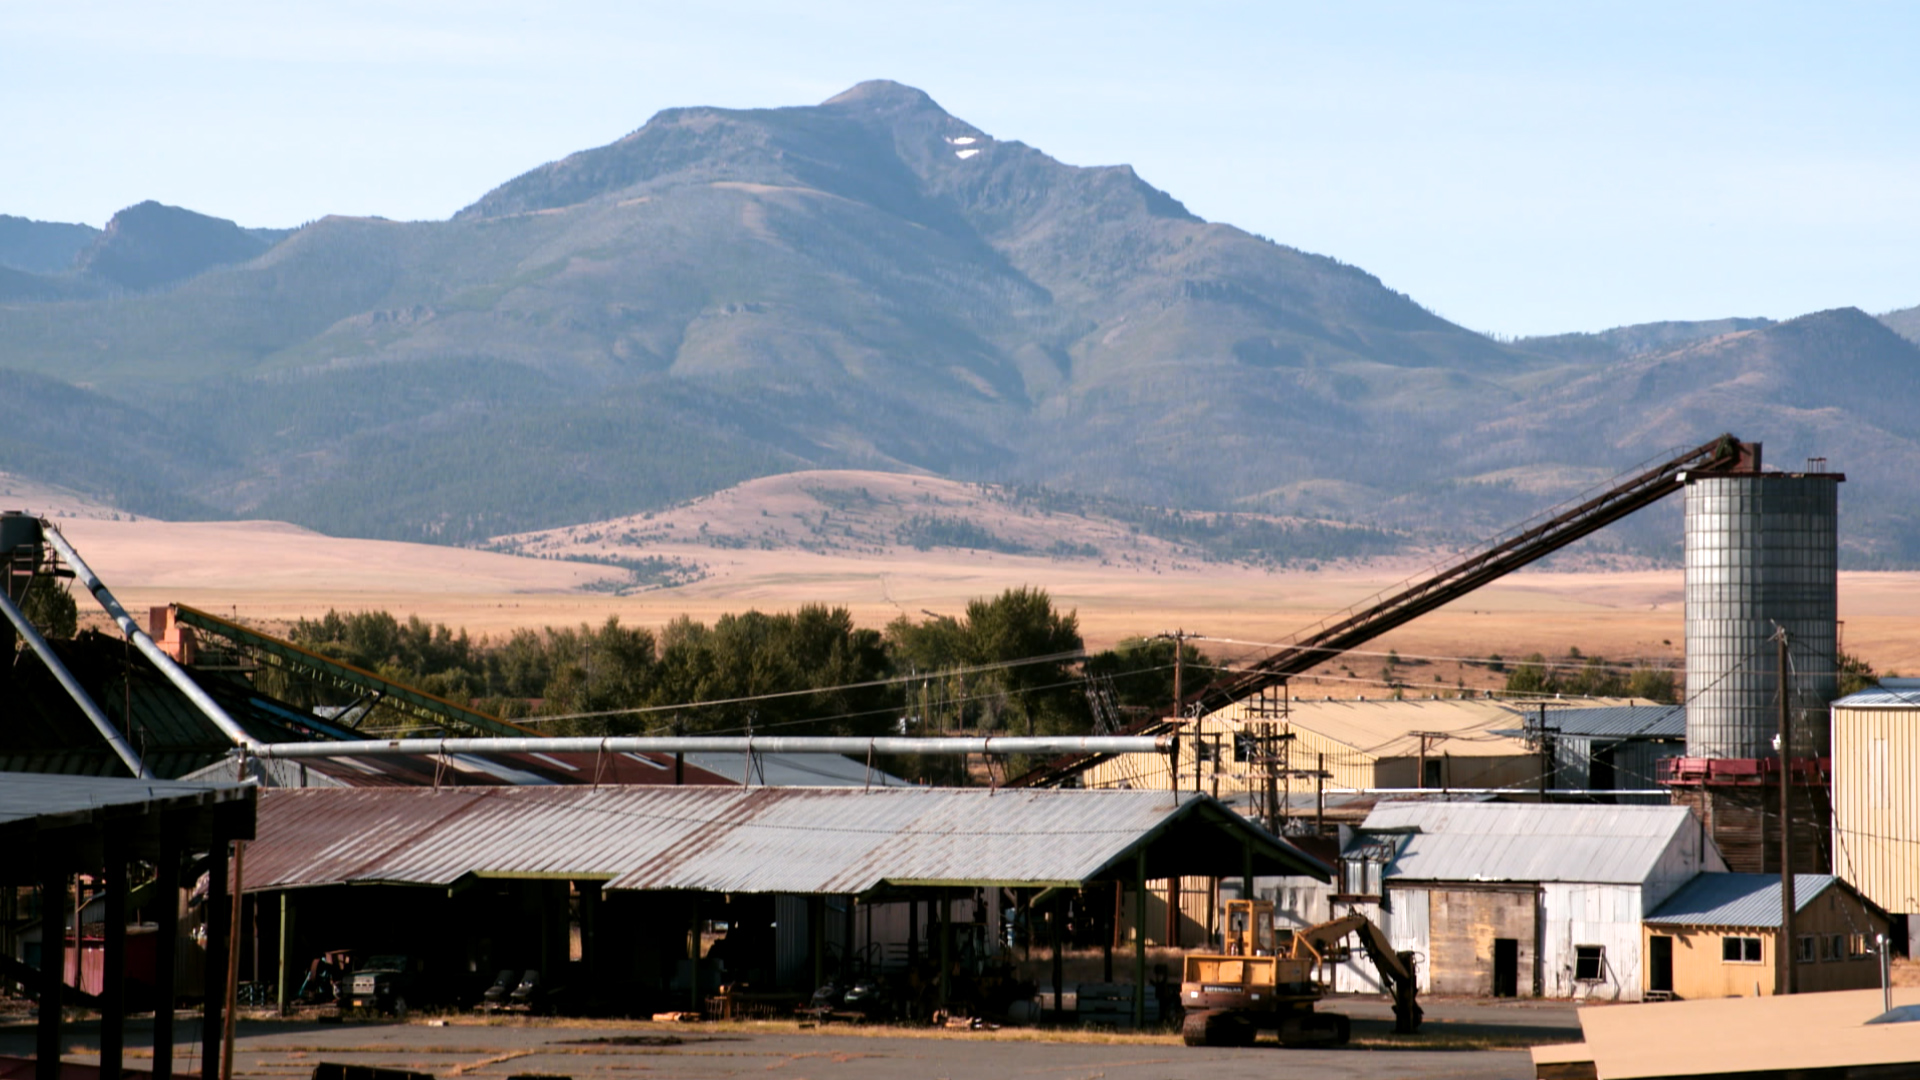 There were once dozens of sawmills in eastern Oregon. Now there are only a handful. The Prairie Wood Products Mill in Prairie City was one of the last to shut down, which it did in 2008 as a result of the housing market collapse and limited timber supplies.